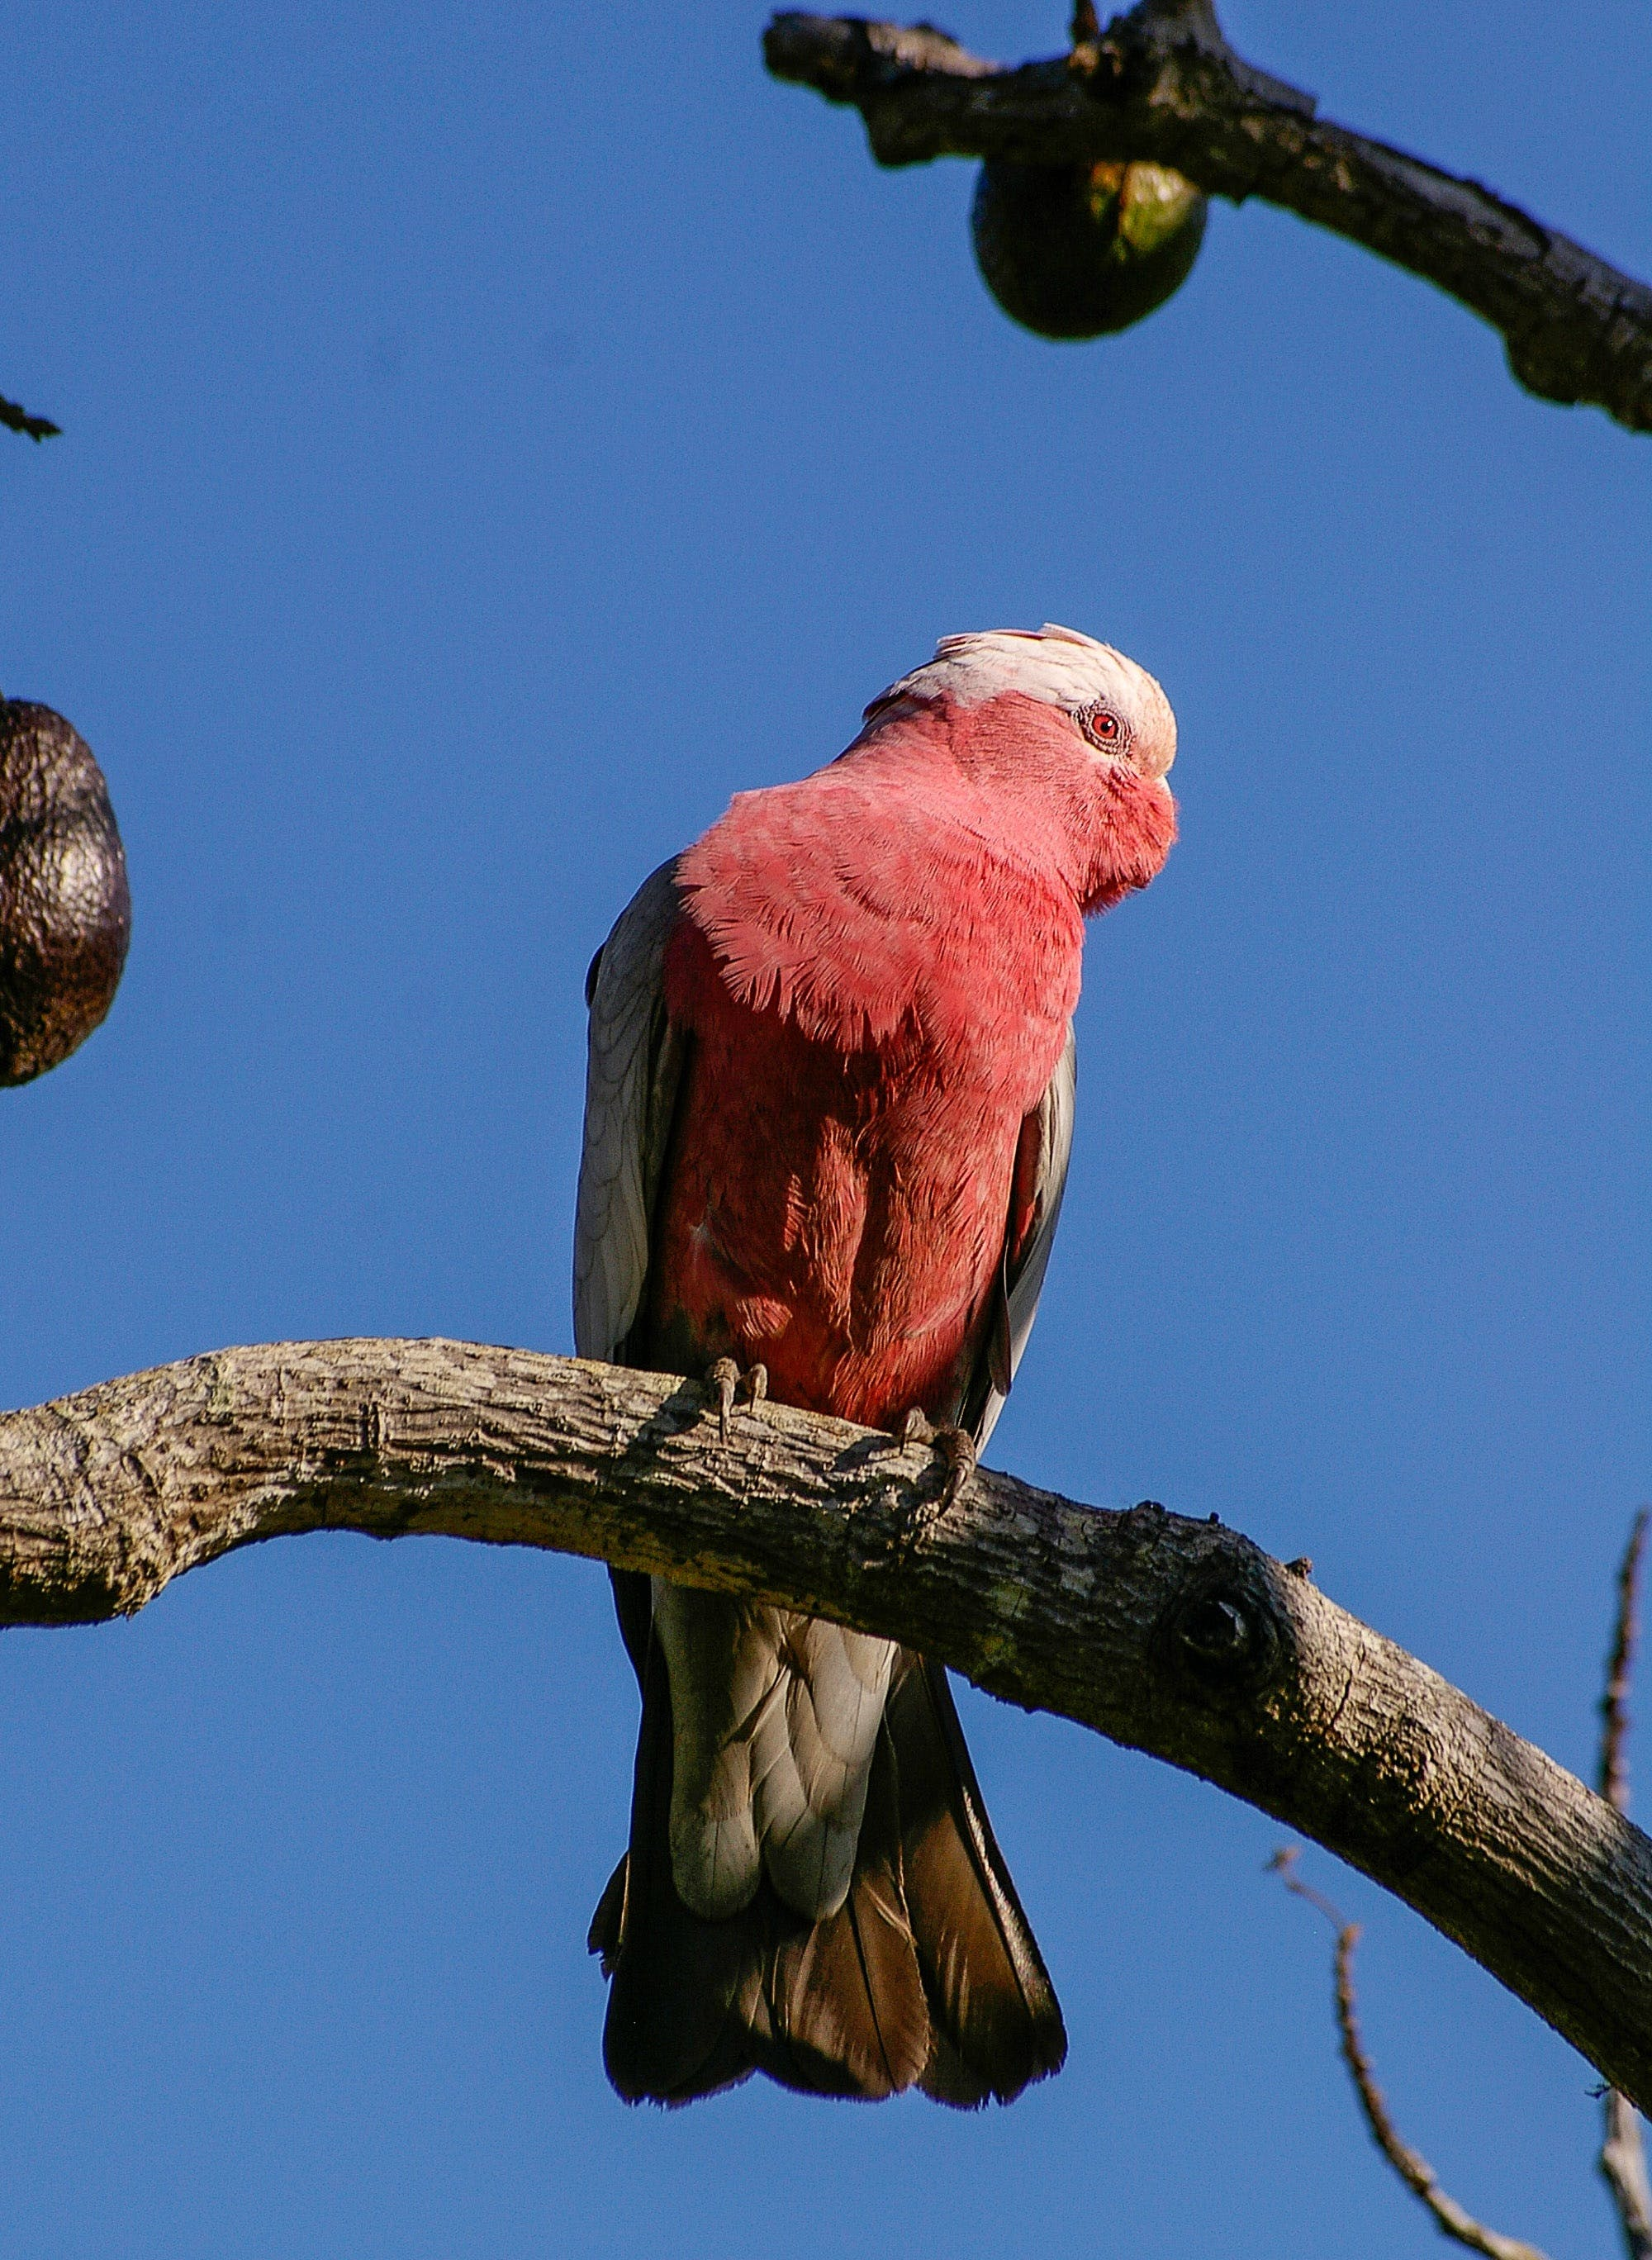 Red and White Bird on Brown Tree Trunk